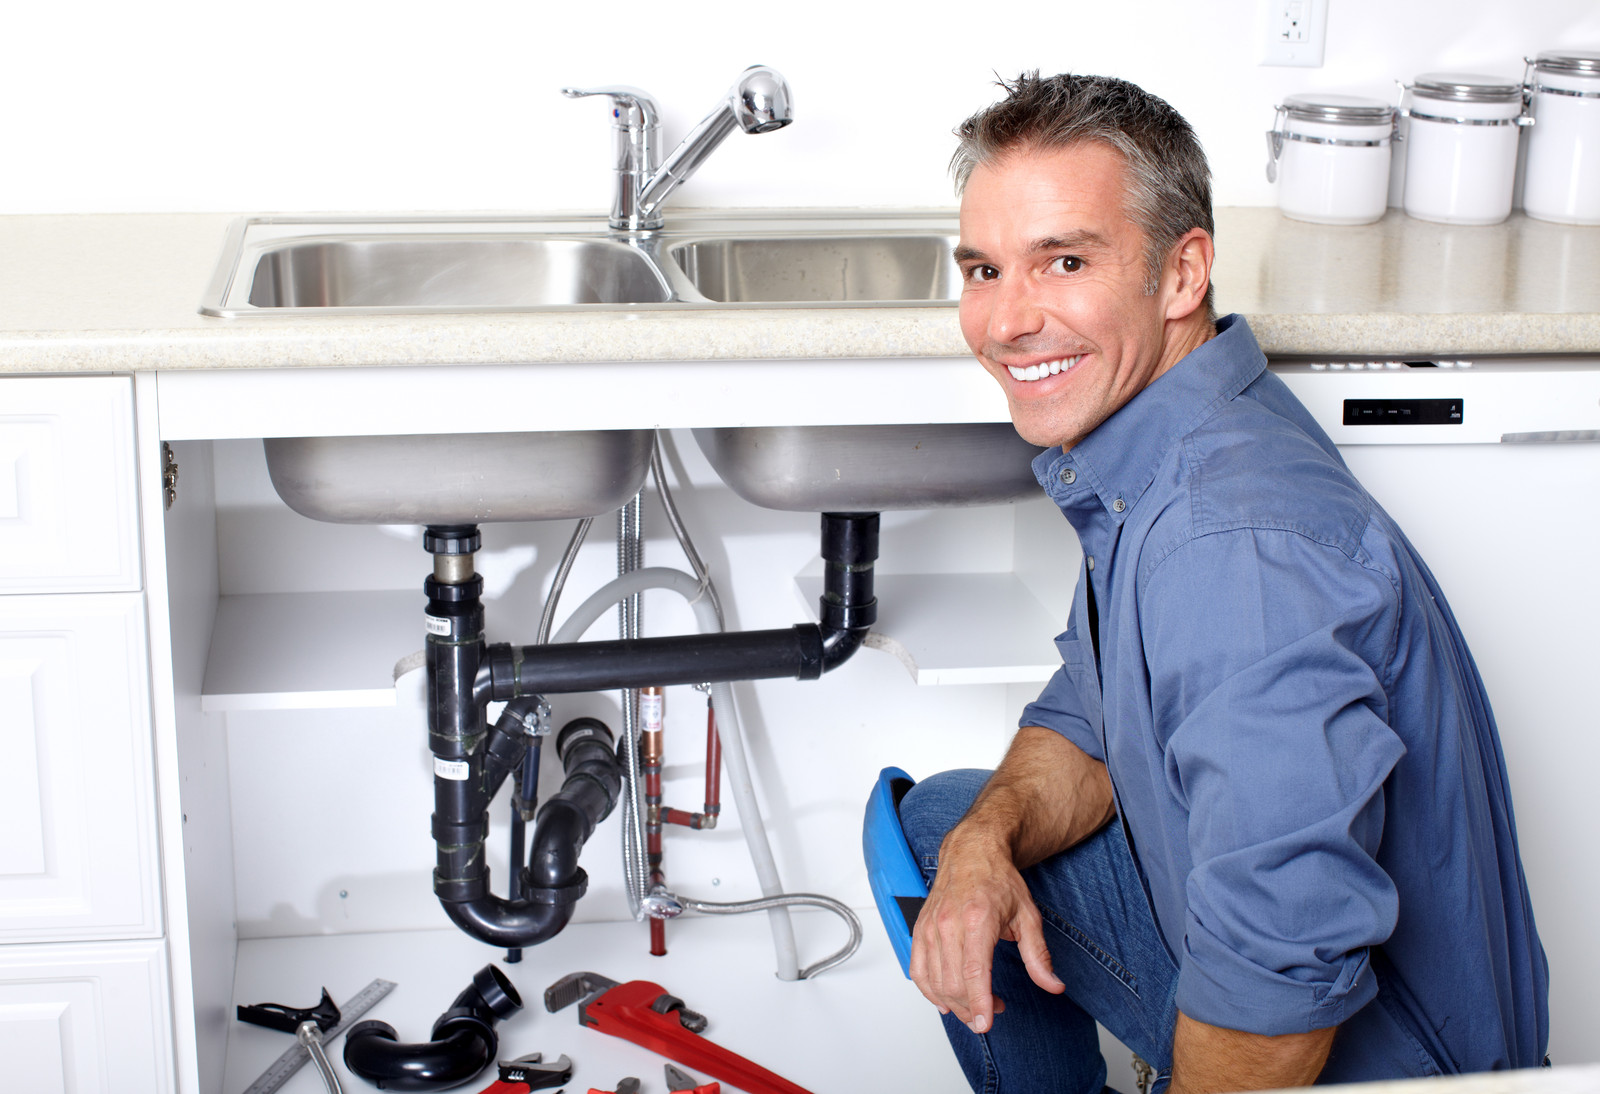 Helpful, eco-friendly plumbing tips for use at home